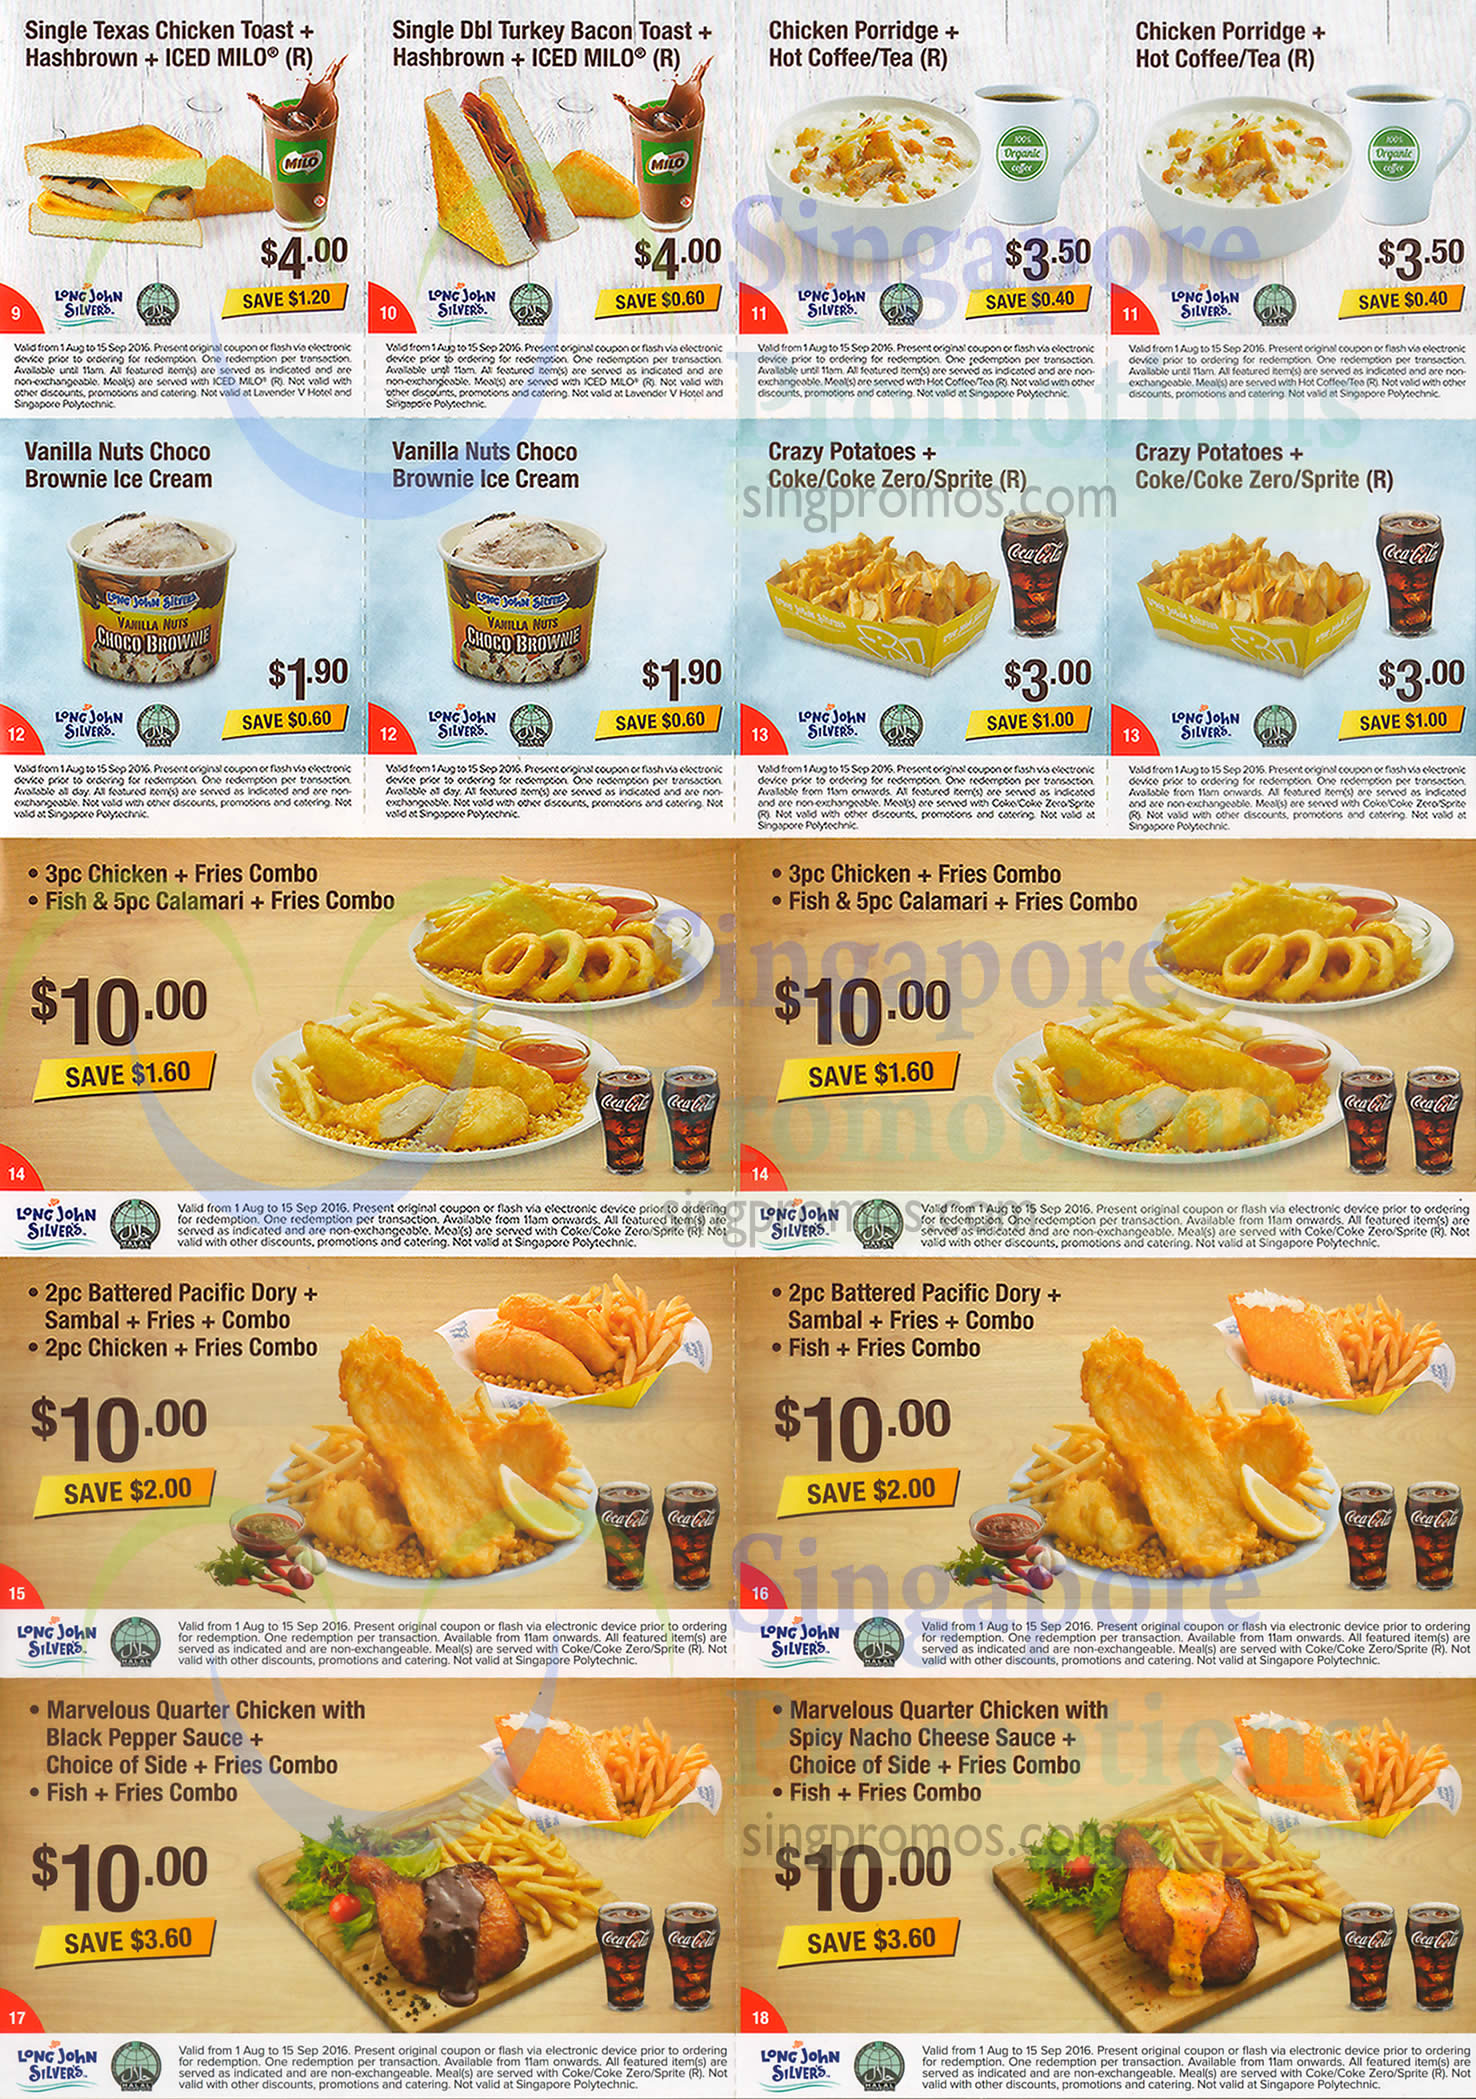 related posts long johns silvers coupons long john silvers coupons ...